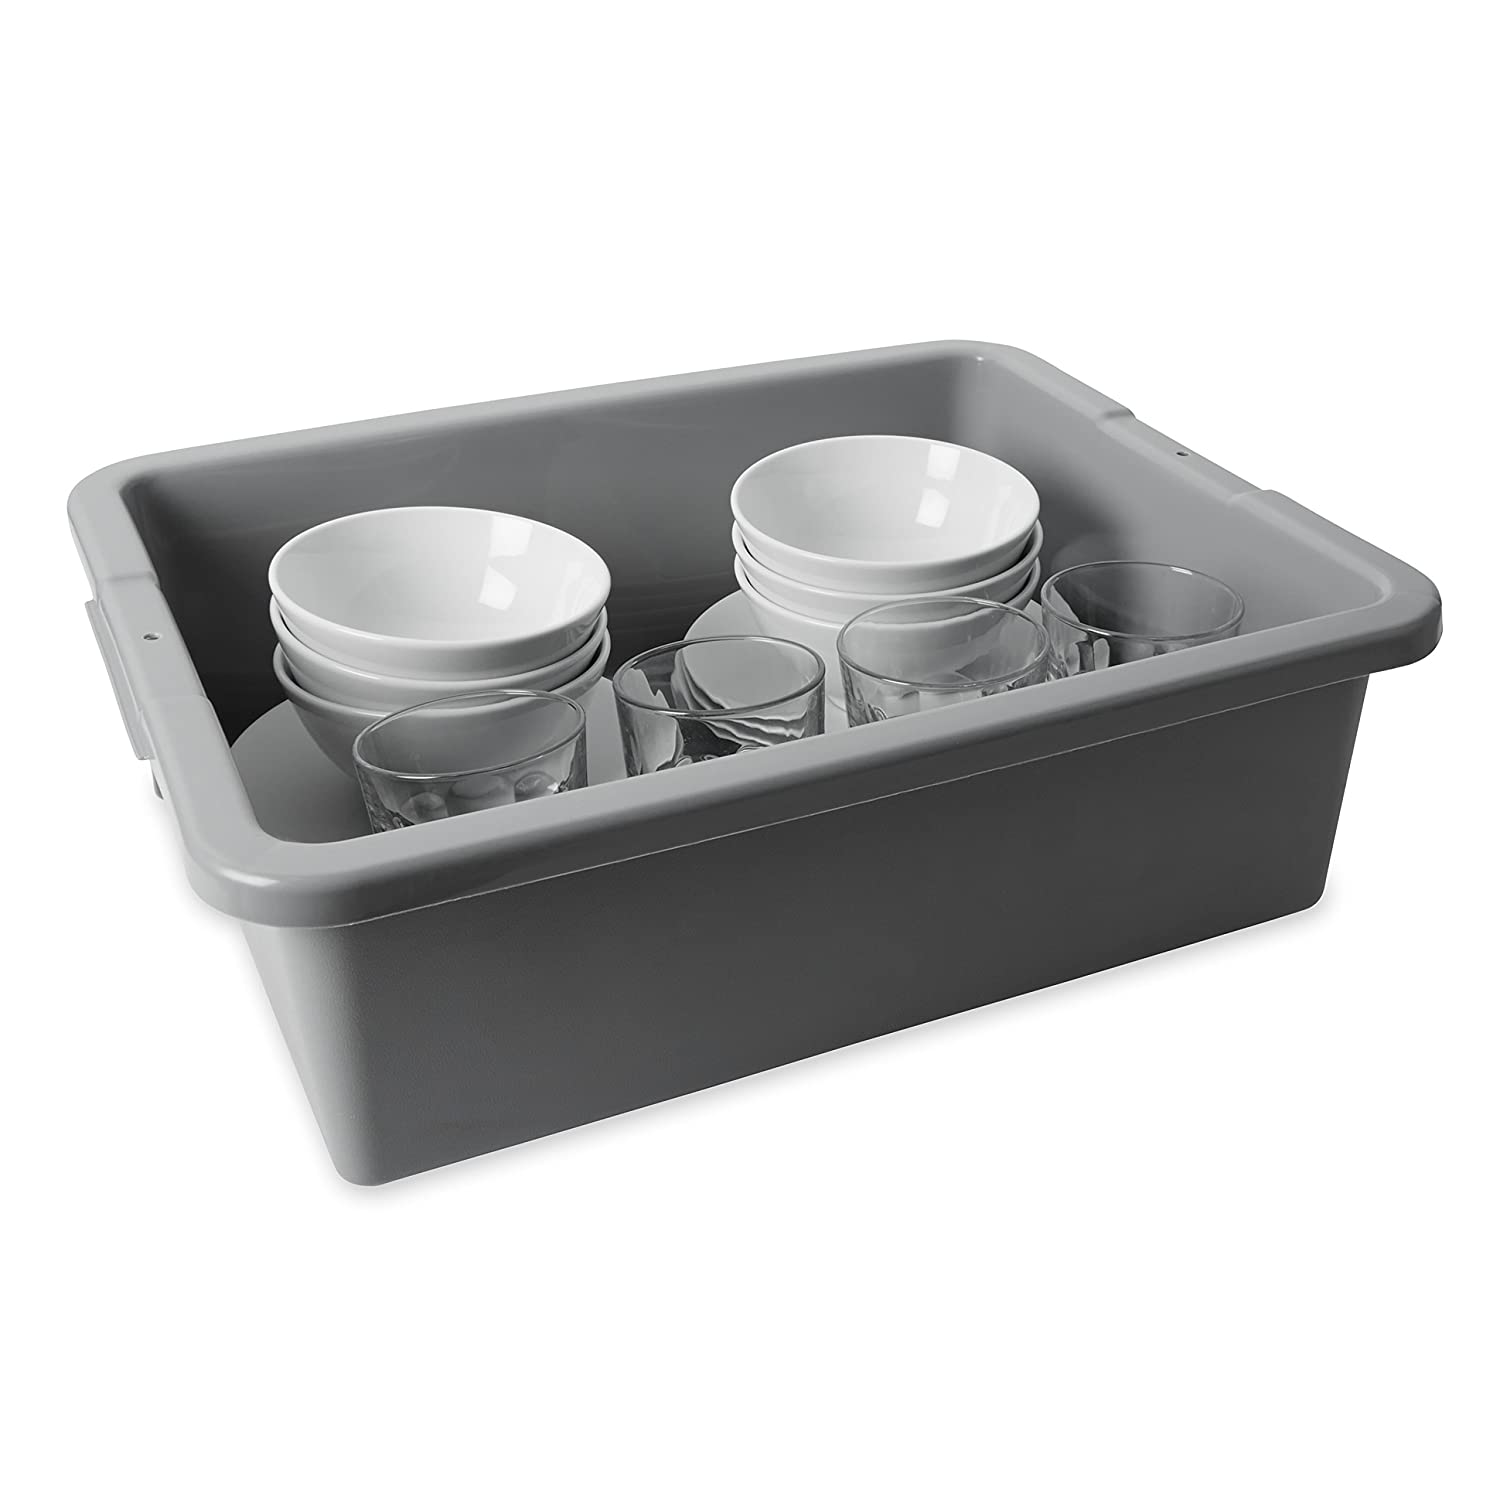 box australia shop plastic in brown online by x kitchen tubs bus original for rubbermaid tub